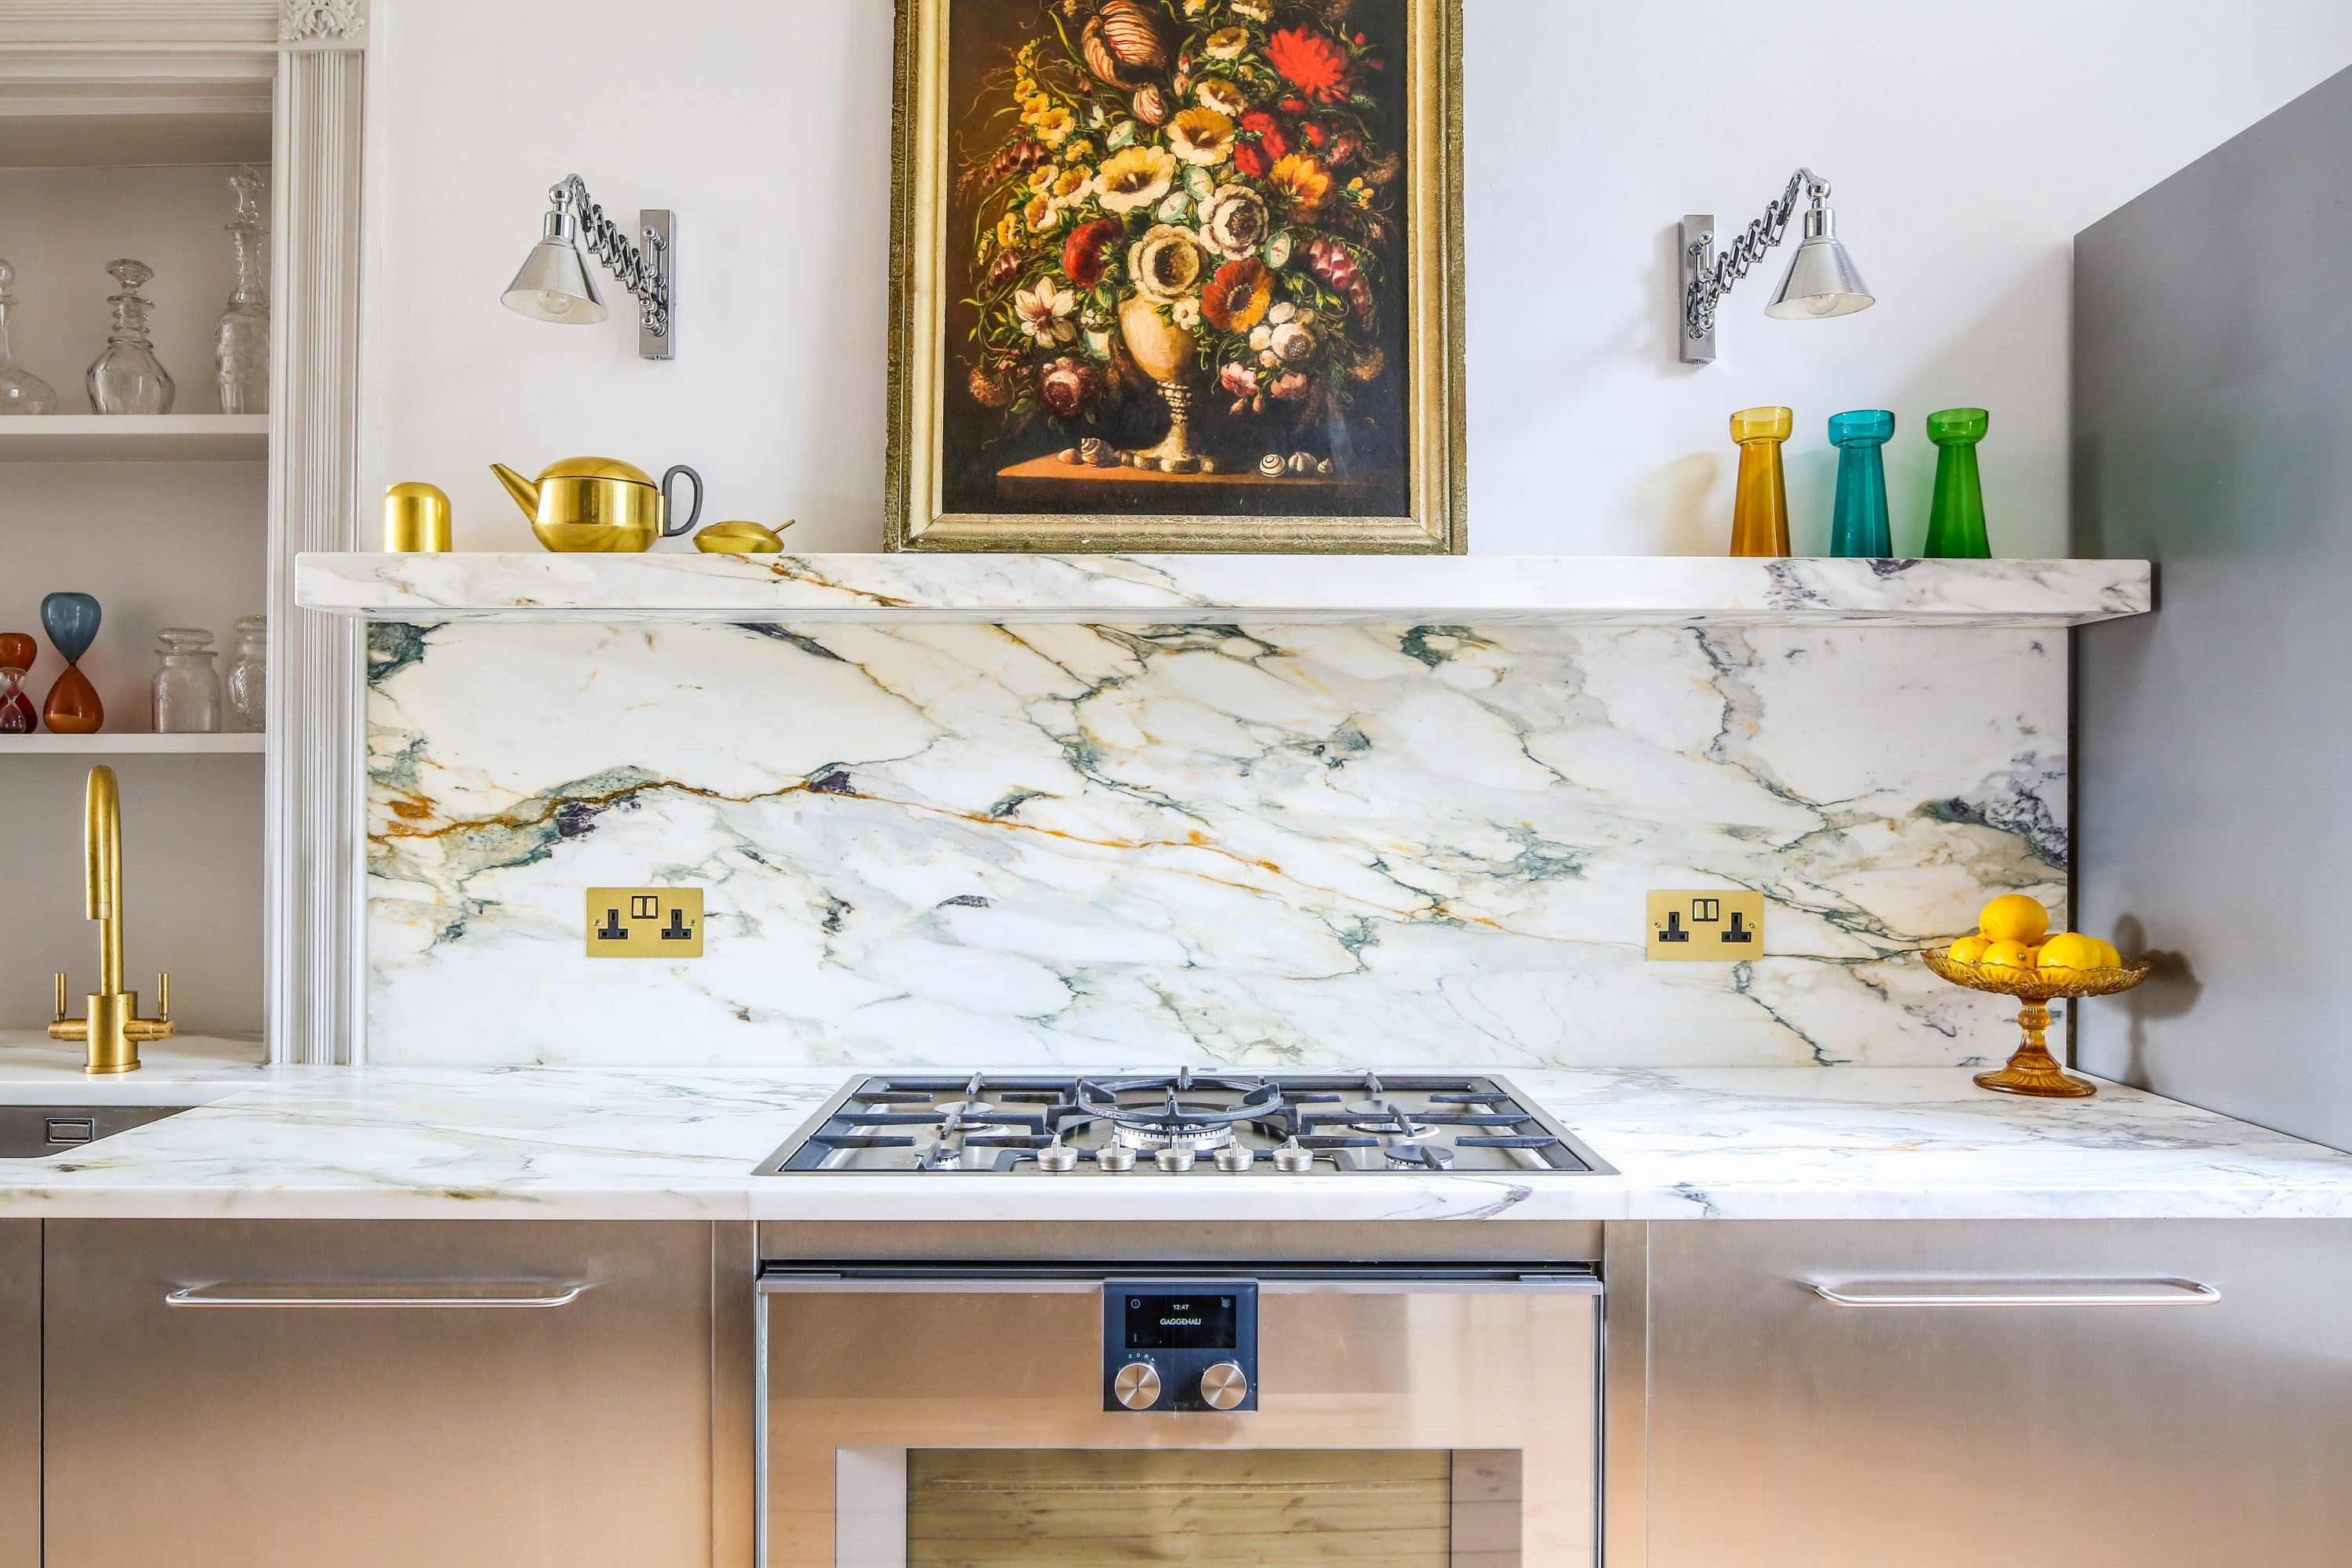 The Steel And Marble Townhouse Kitchen - Sustainable Kitchens